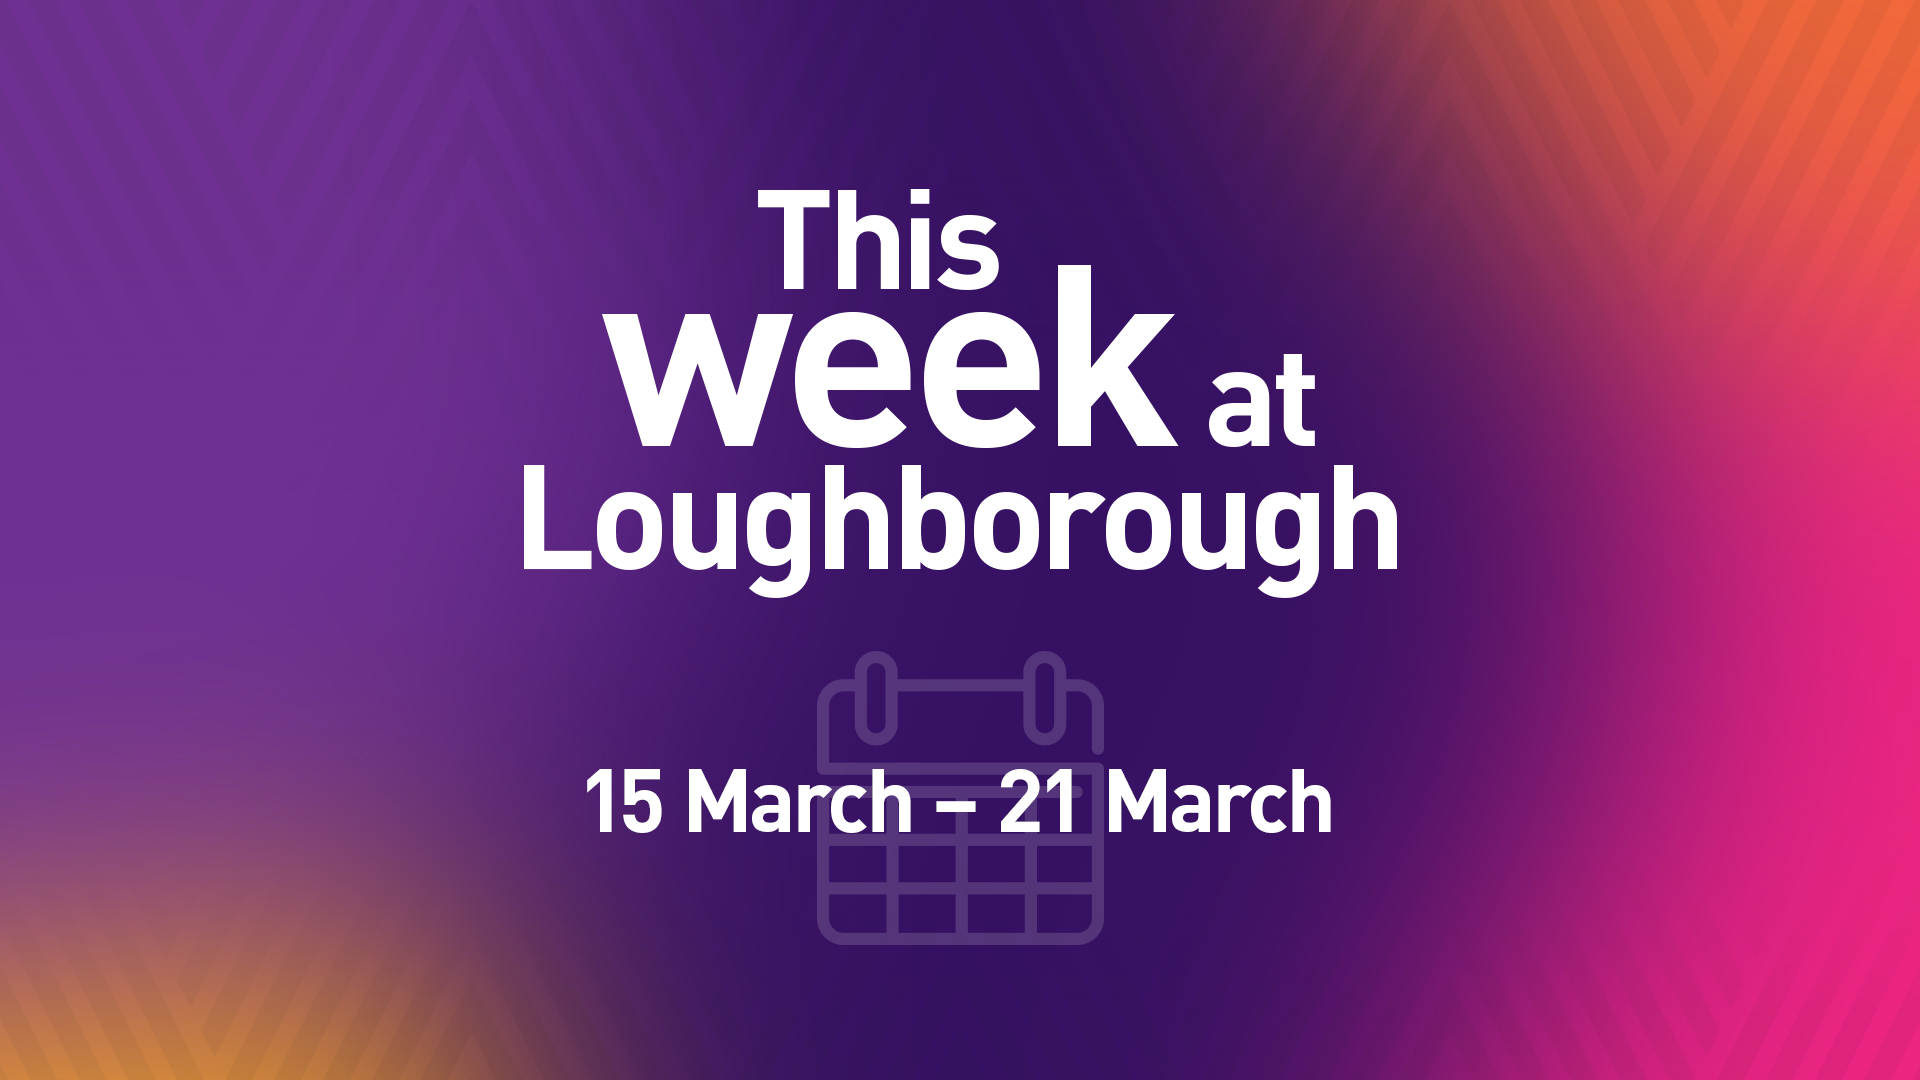 This Week at Loughborough | 14 March